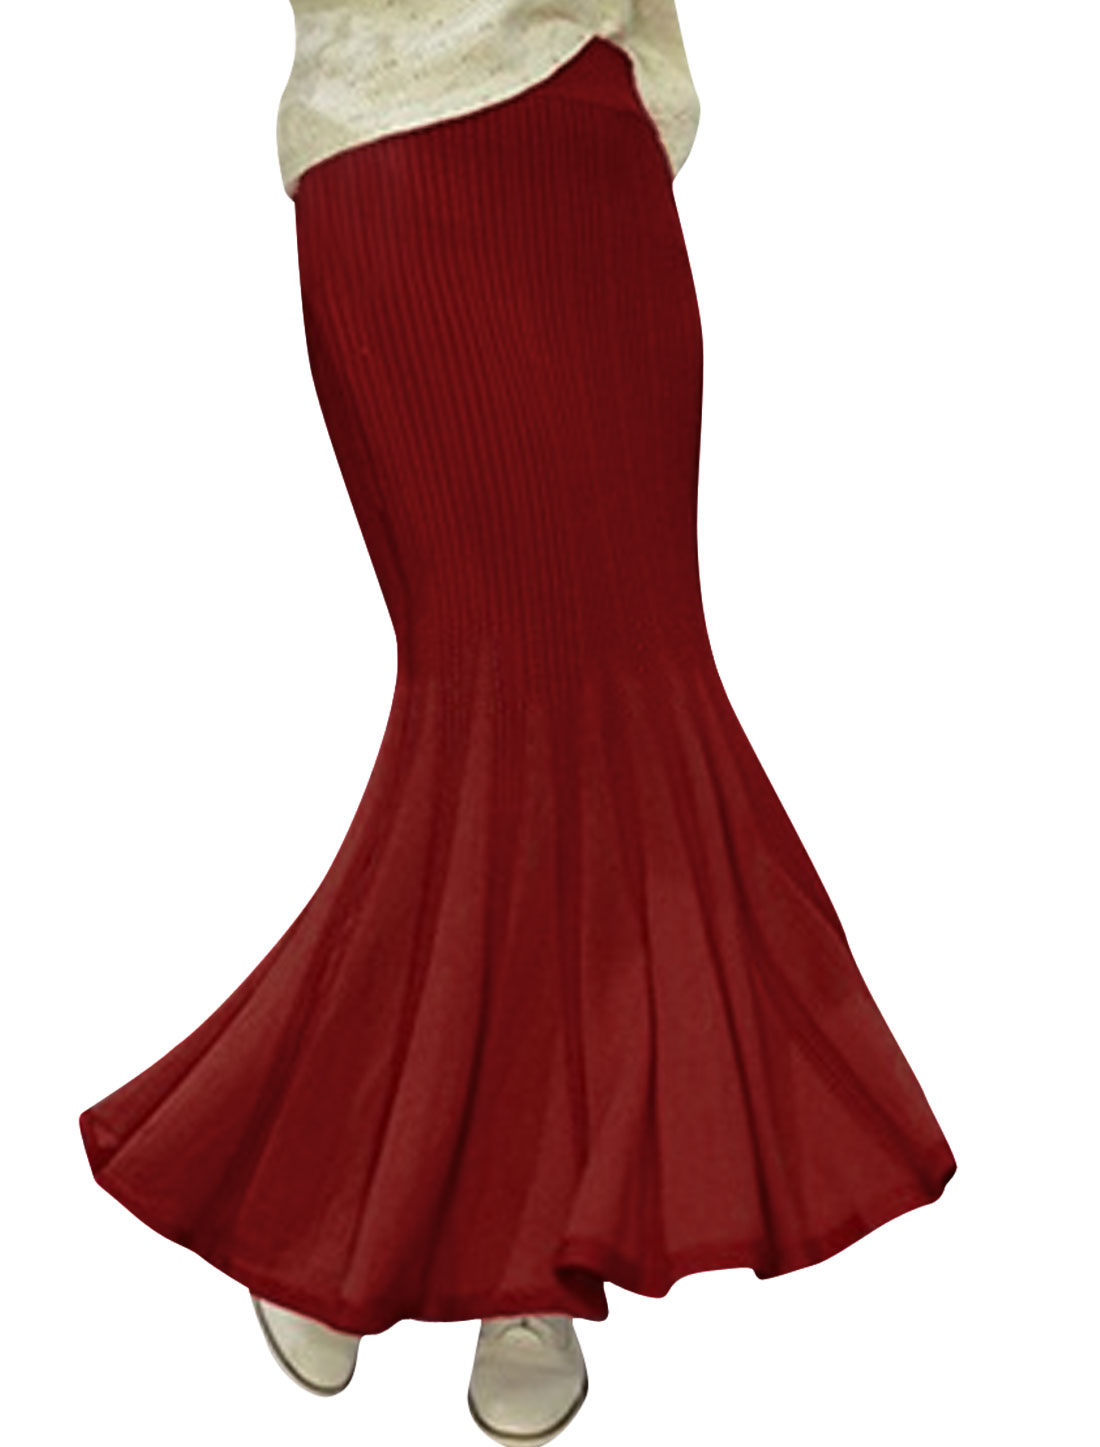 Lady Knitted Elastic Waist Fashion Design Maxi Skirt Burgundy XS